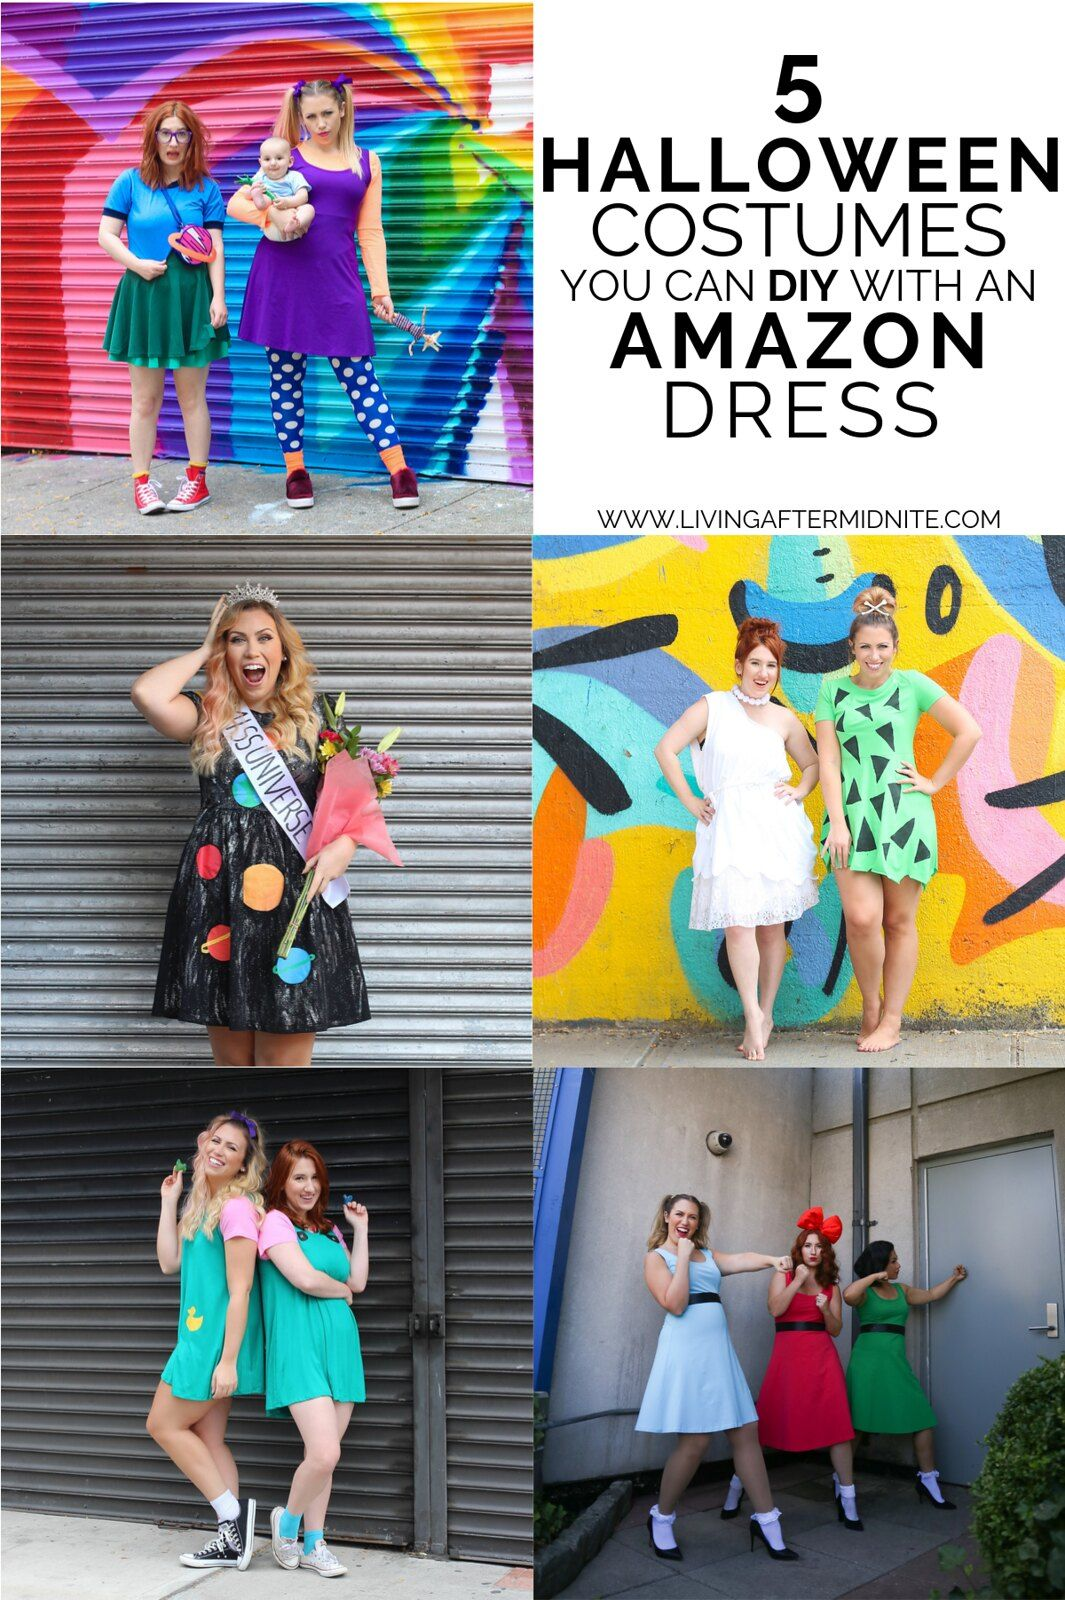 5 Costumes You Can DIY with an Amazon Dress Amazon